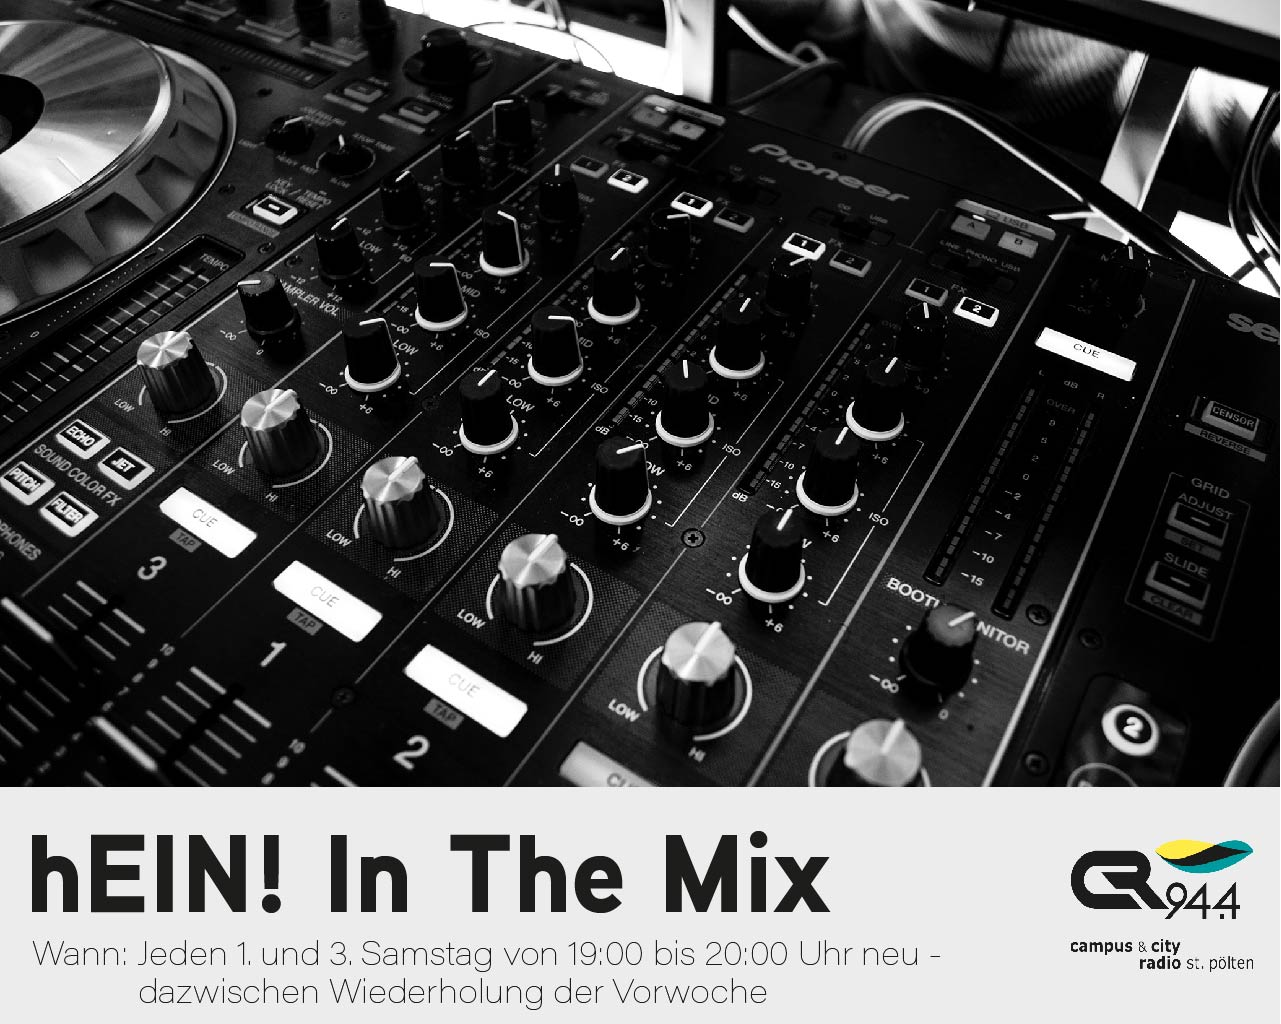 hEIN! In The Mix, Samstag 10.3.18, 19.00-20.00